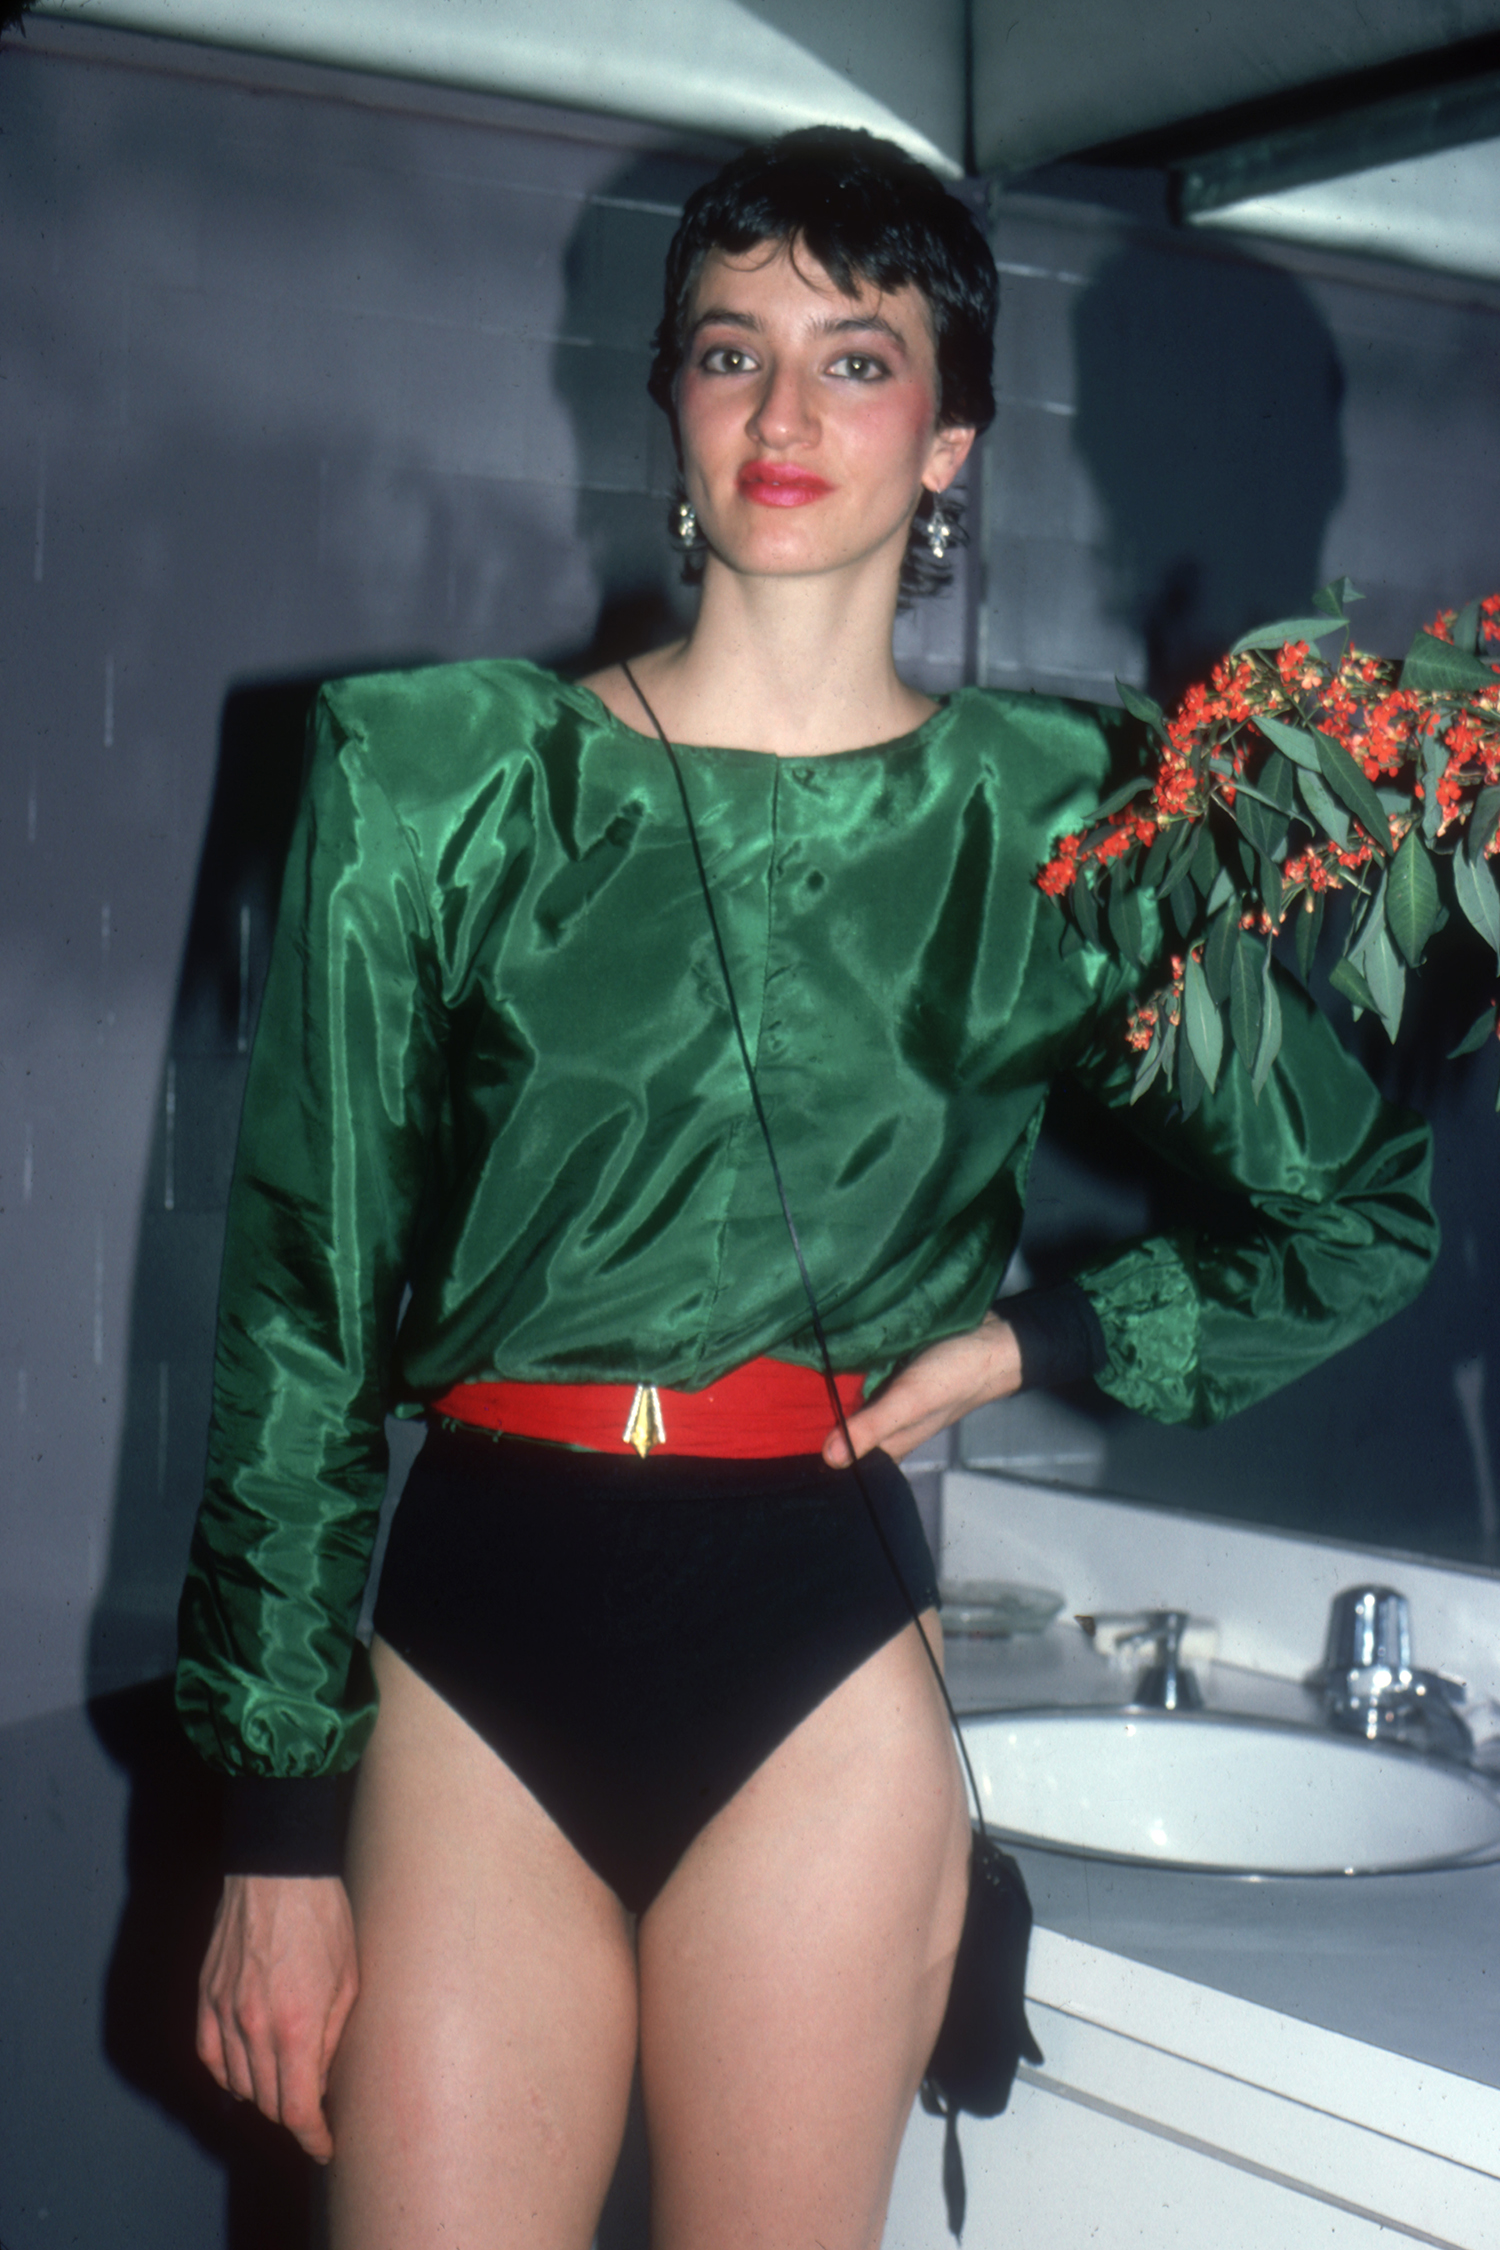 80s Vintage Clothing In The Uk Just Got Easier: Vintage 80s Fashion Photos